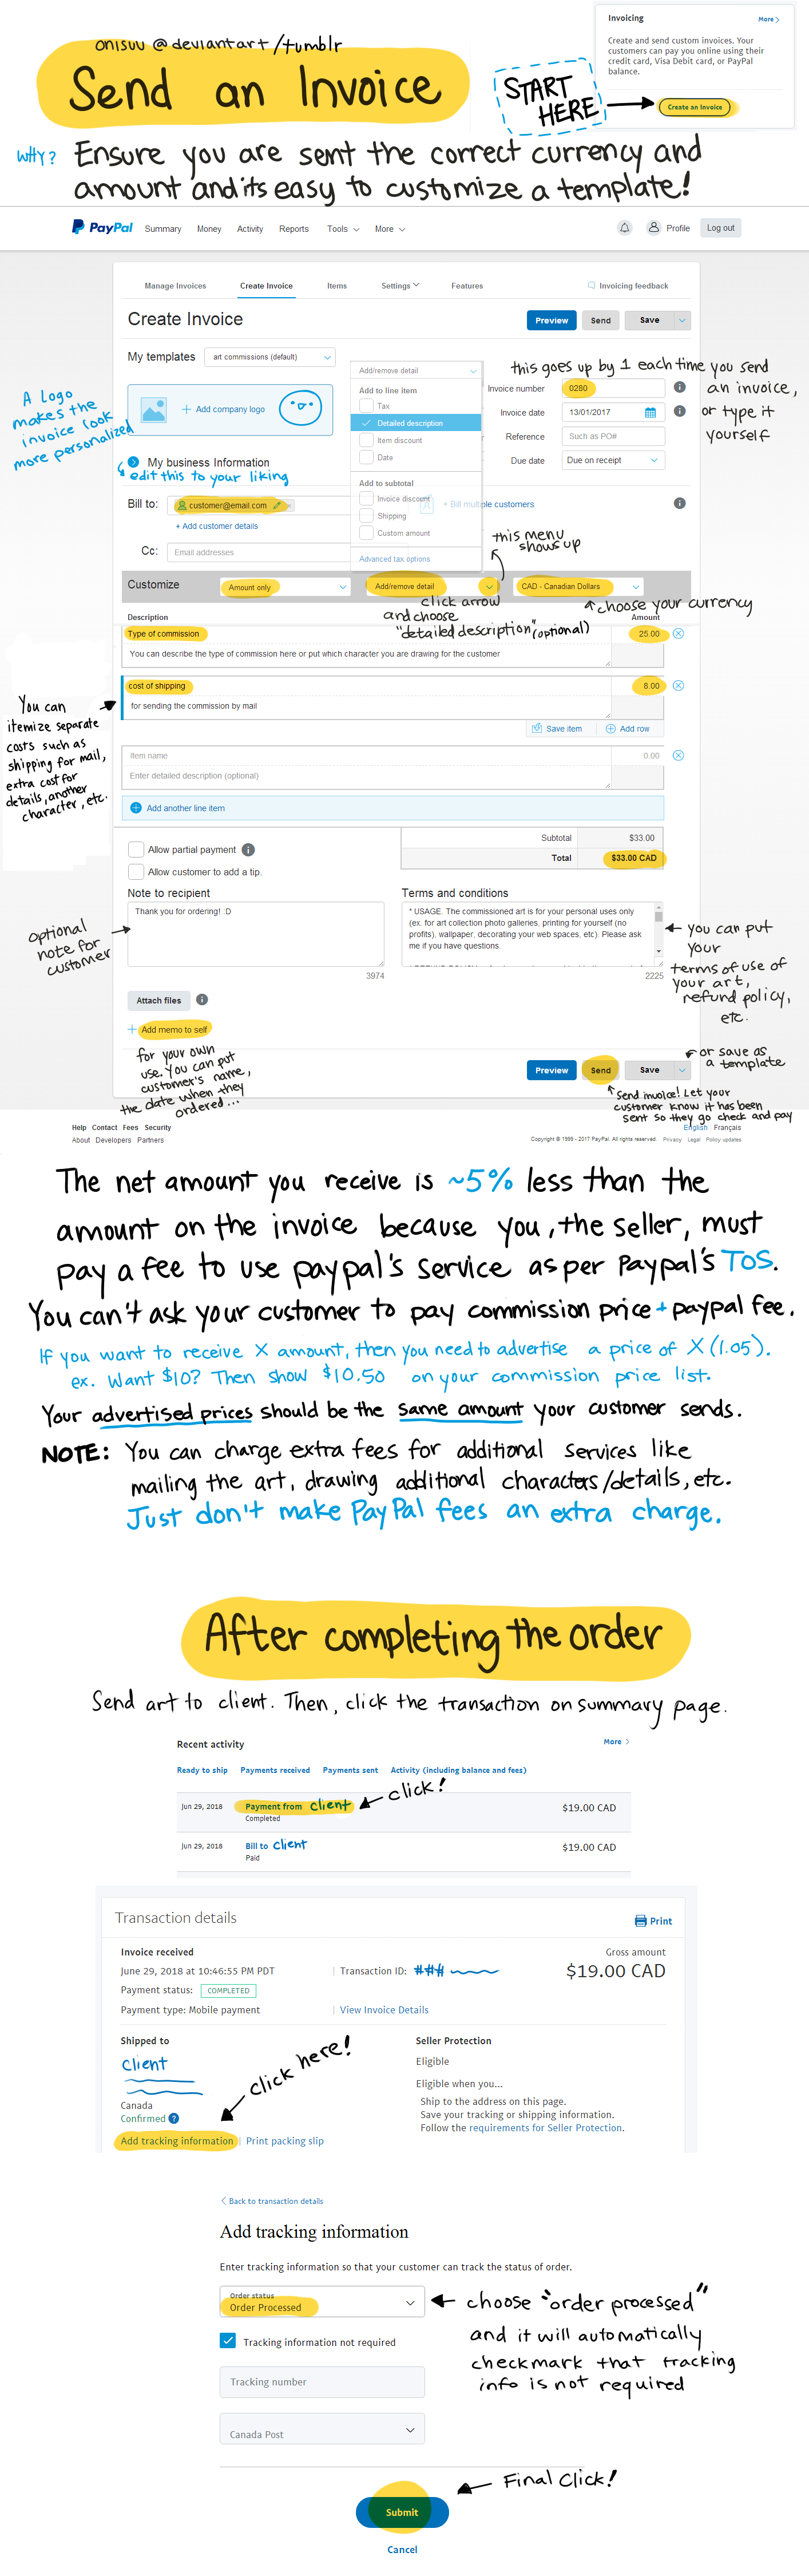 Invoice Guide For PayPal By Onisuu On DeviantArt - How to create an invoice on paypal for service business